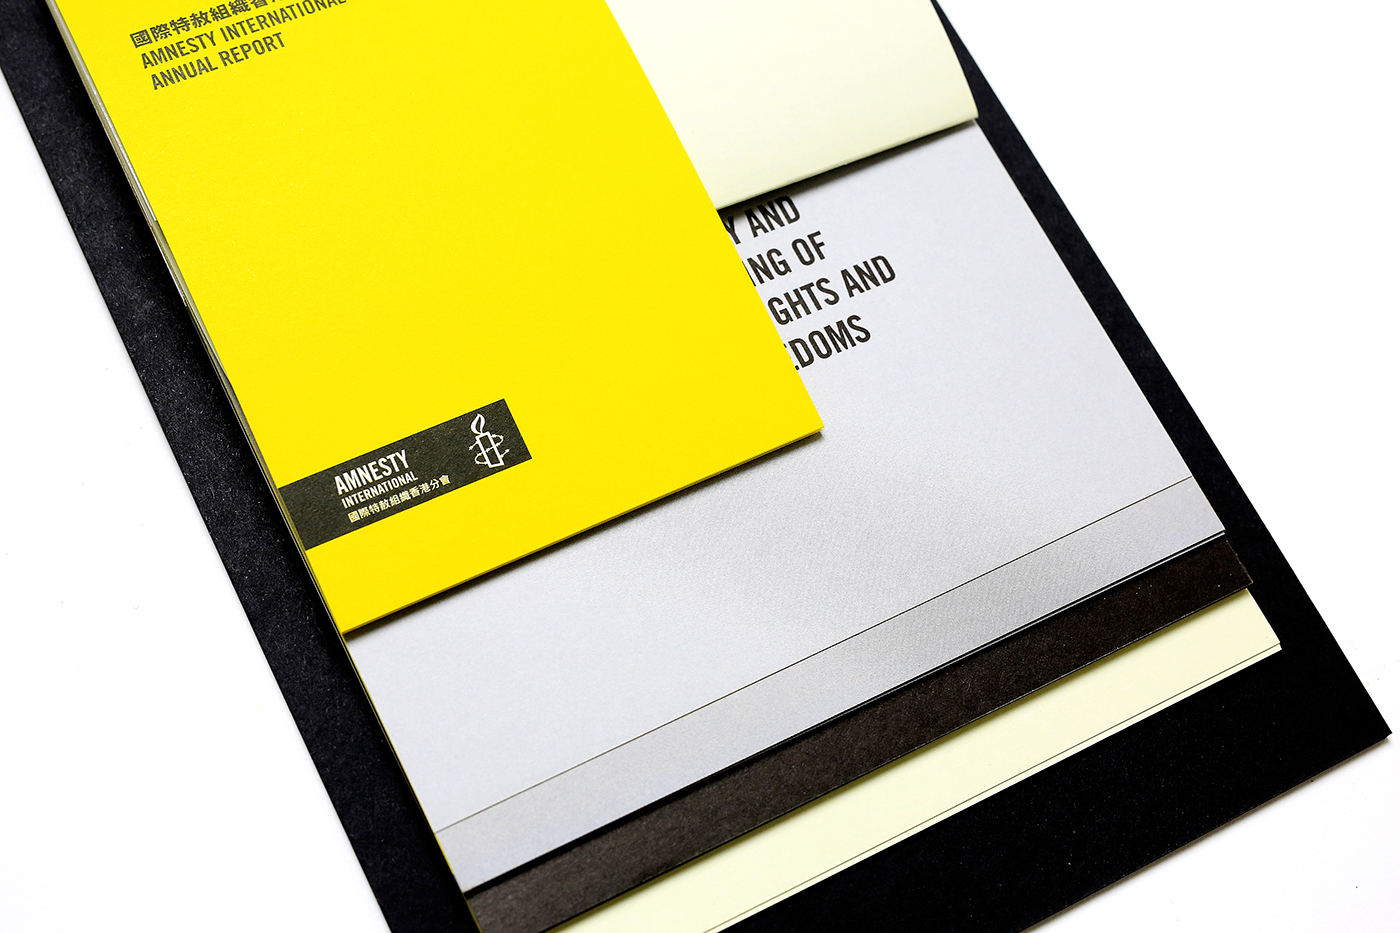 annual report amnesty Hong Kong publication typography   stationary editoral graphic branding  print